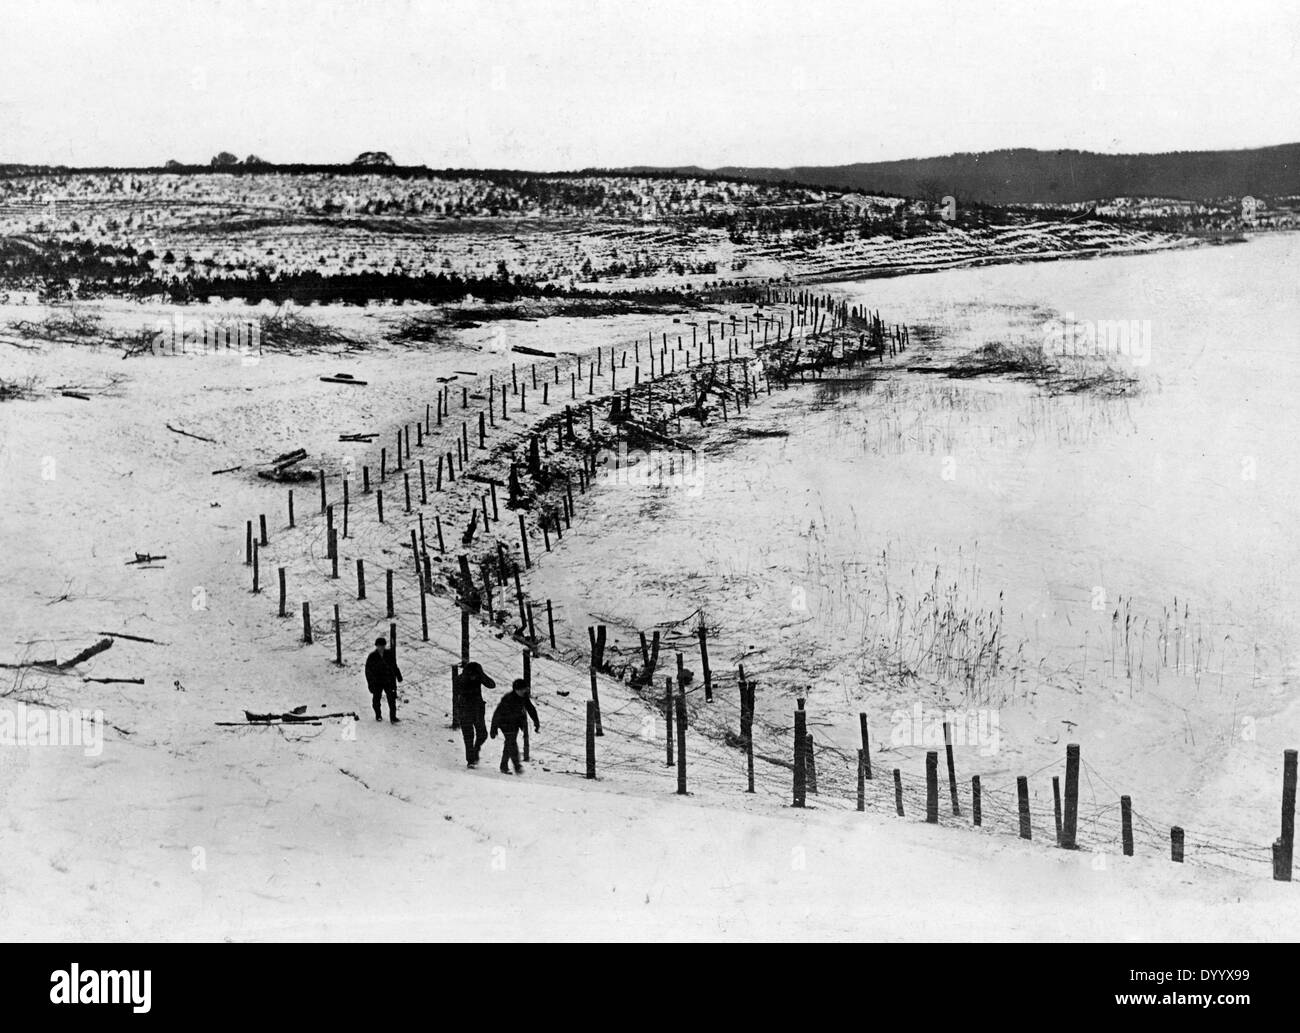 Barbed wire entanglement at the Masurian Lakes, 1915 - Stock Image